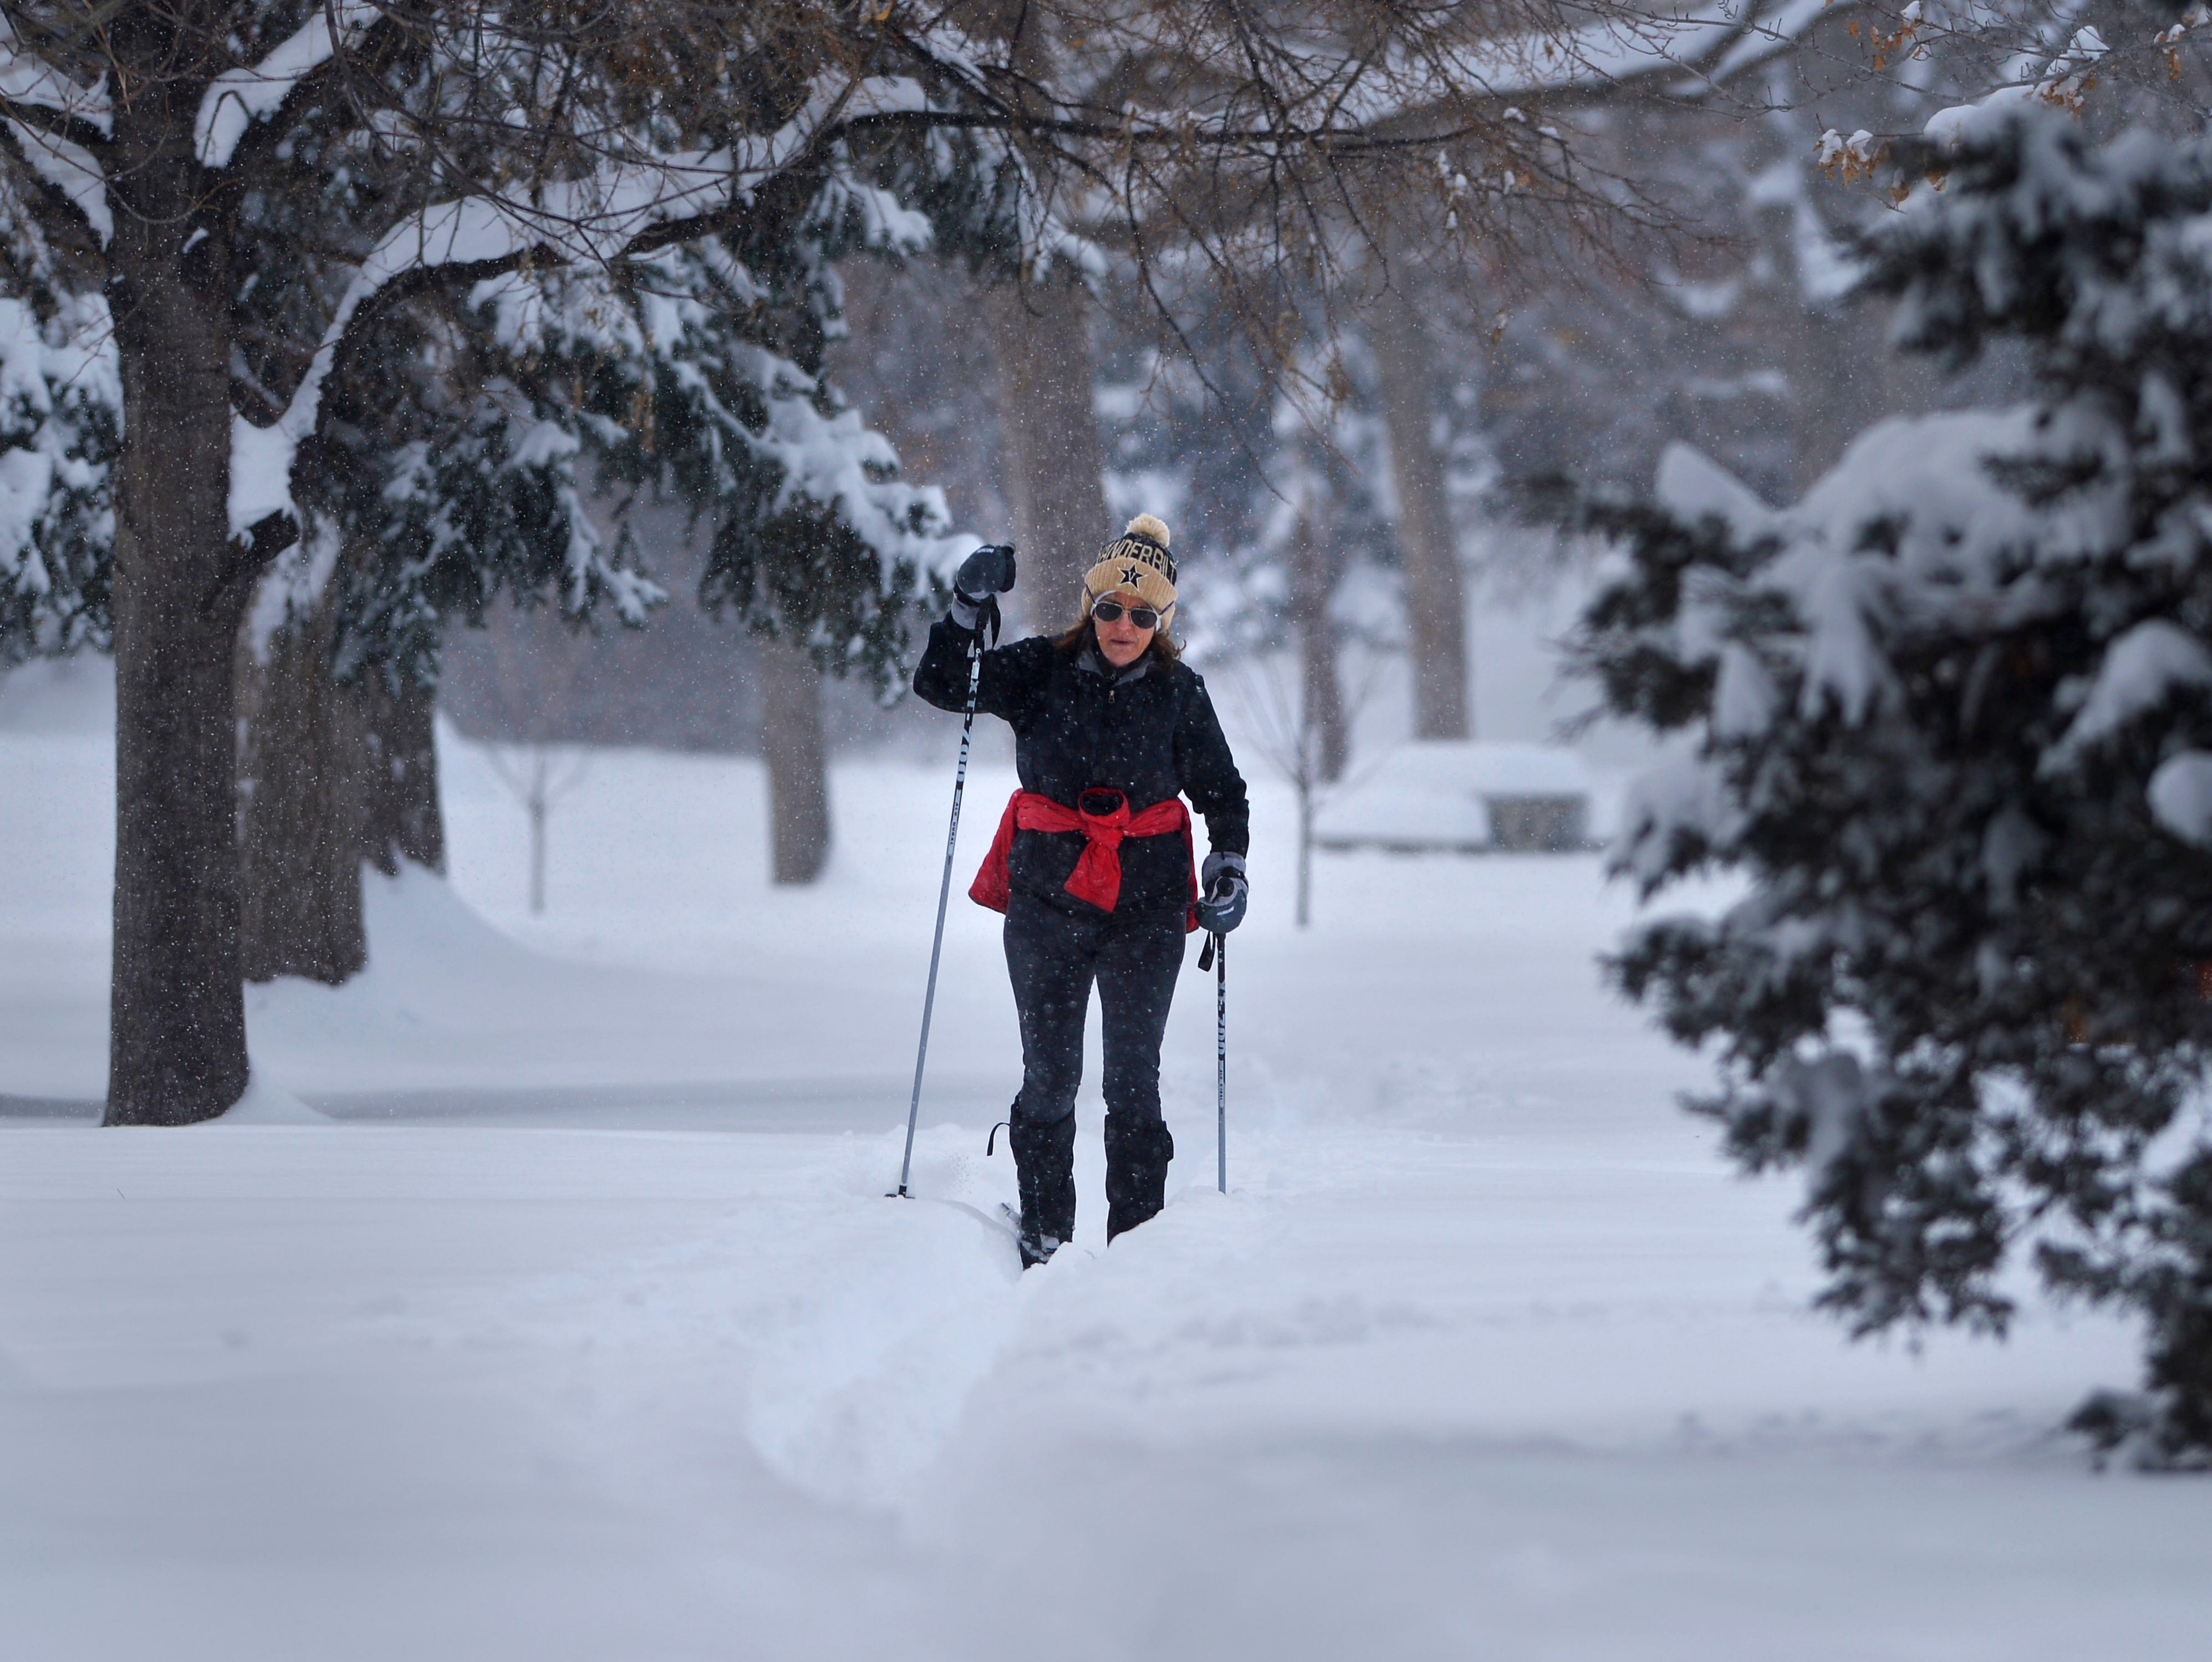 Sheila Kelly loves to cross country ski in Gibson Park whenever there is enough snow like on Saturday, February 16, 2019.  Great Falls received over 21 inches of snow from February 1 through February 17.